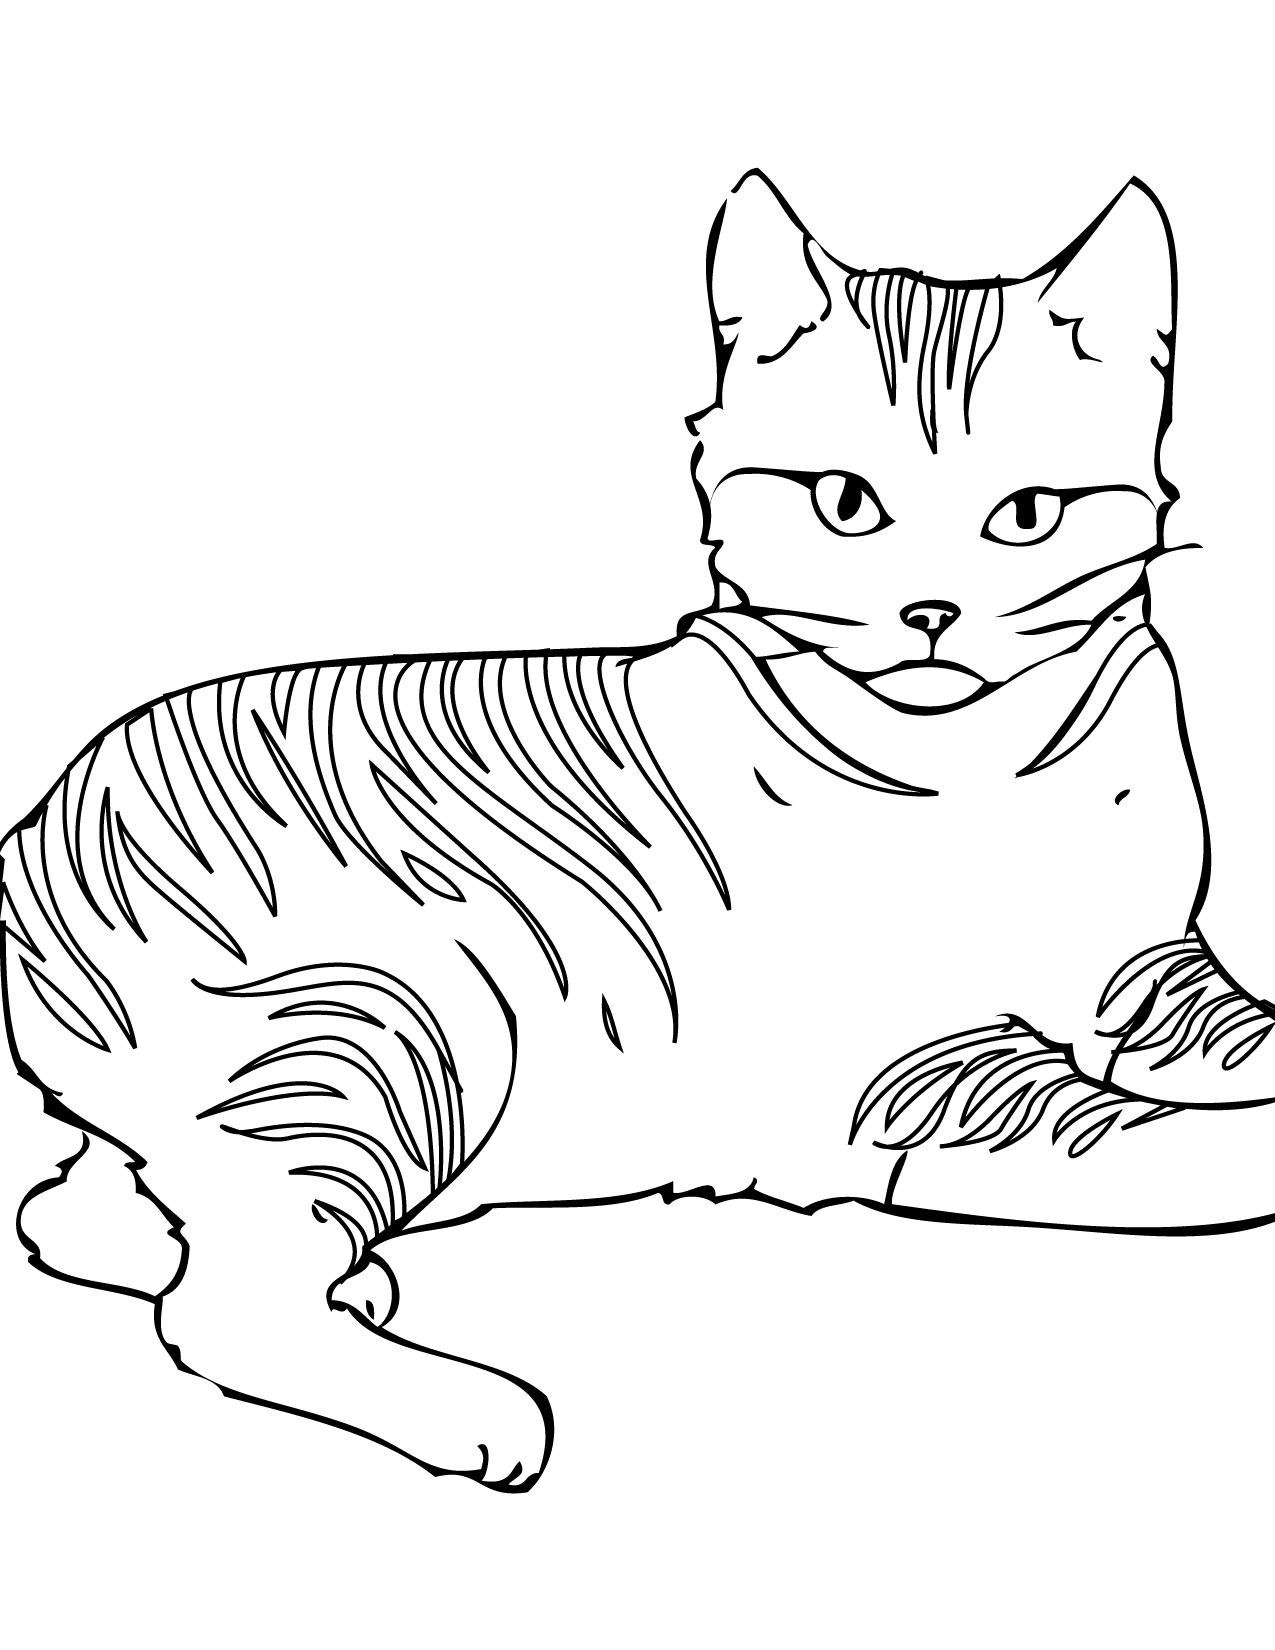 cat pictures to color and print kitten coloring pages best coloring pages for kids pictures and color cat to print